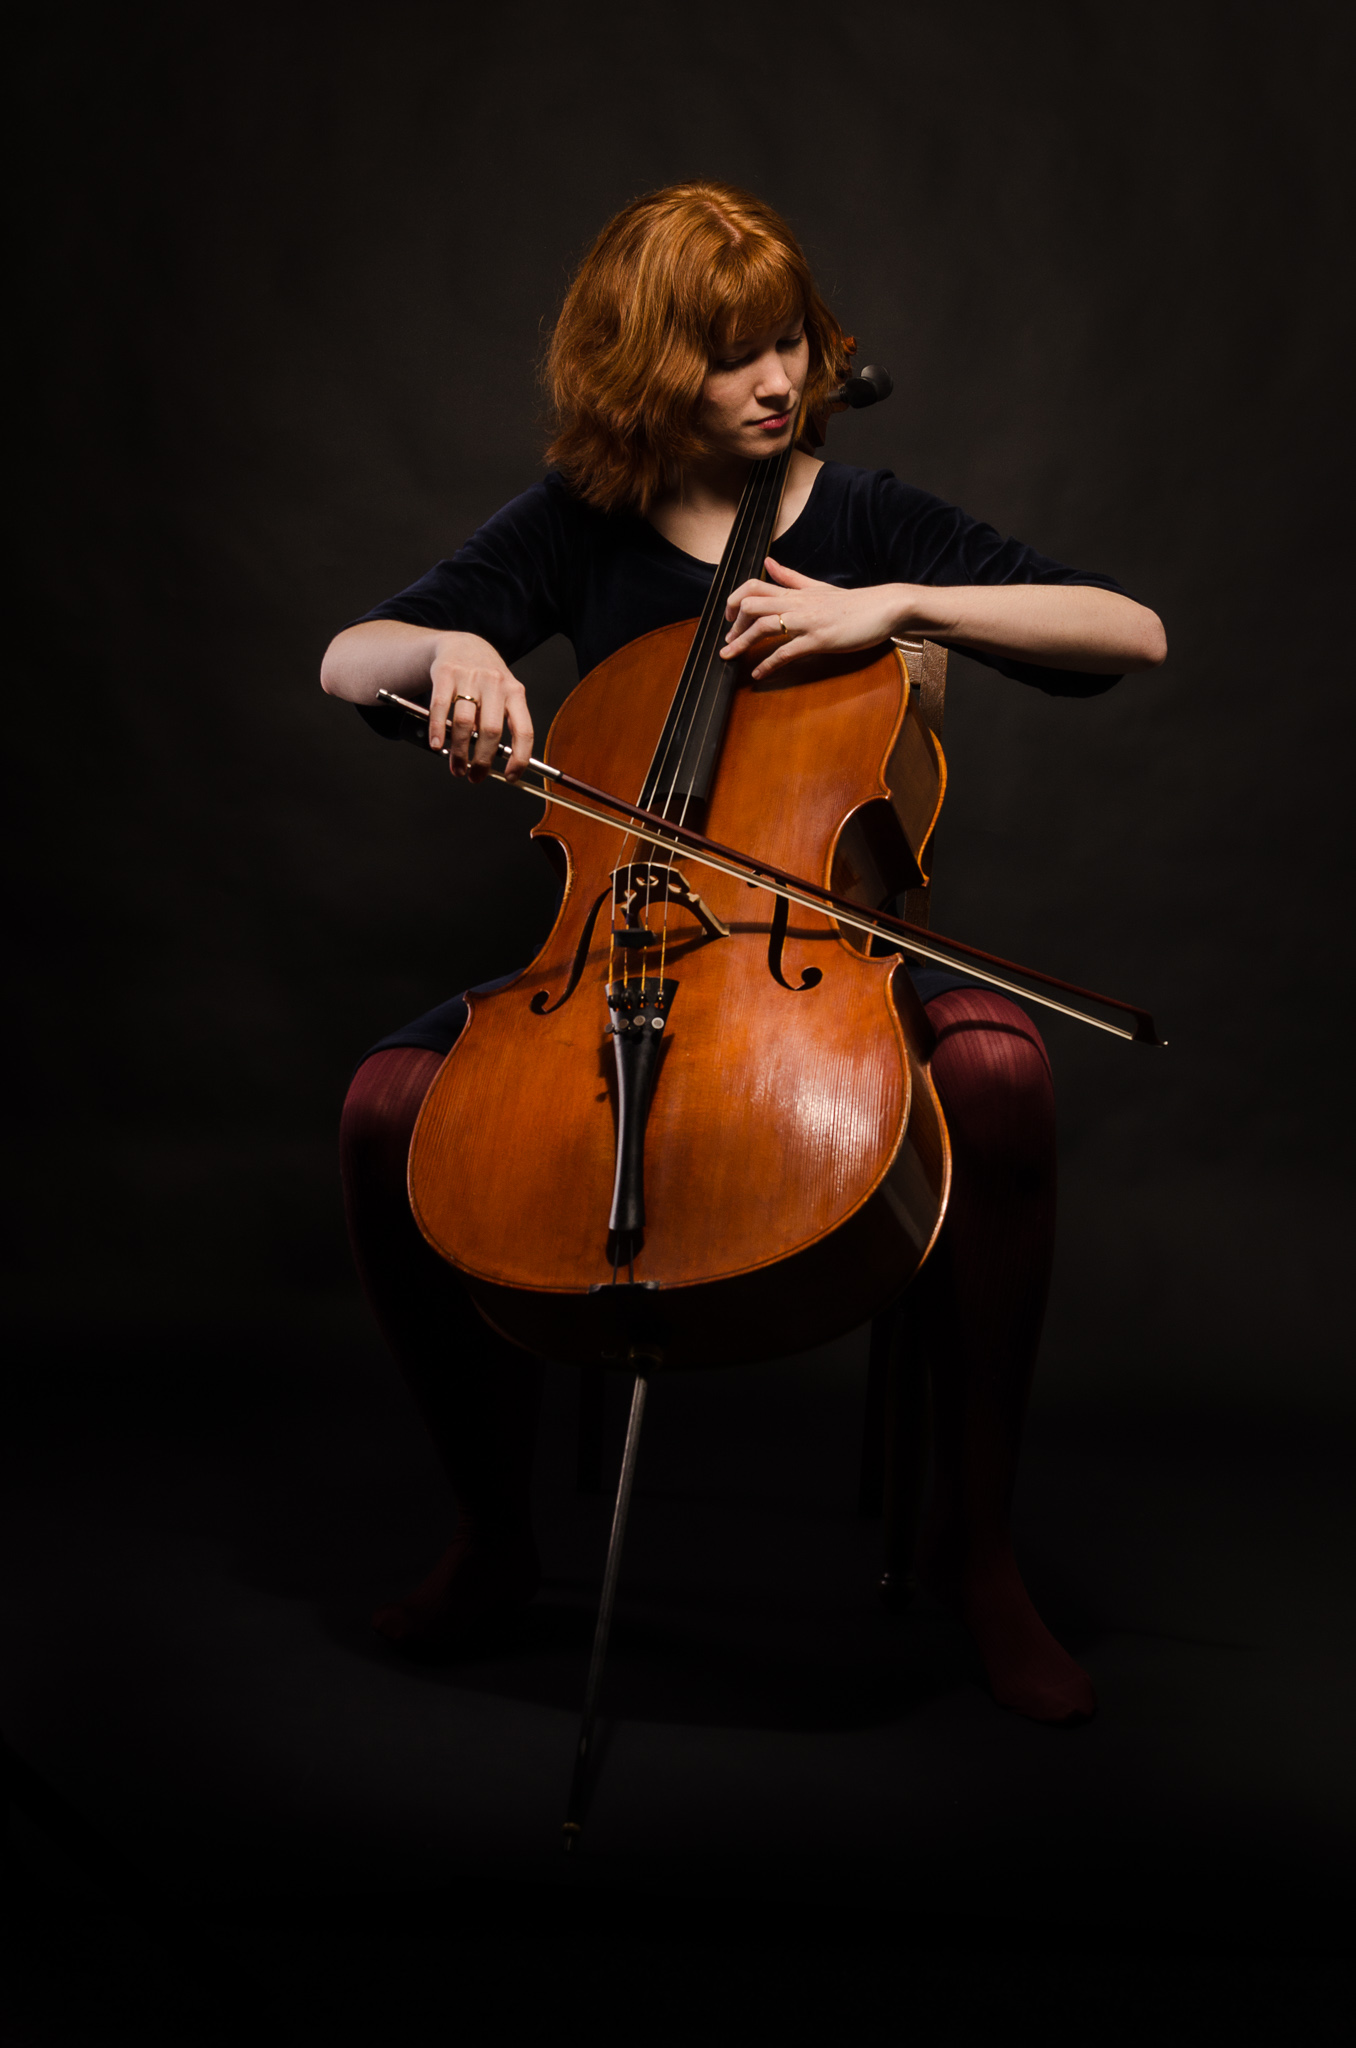 Cecillie playing her cello